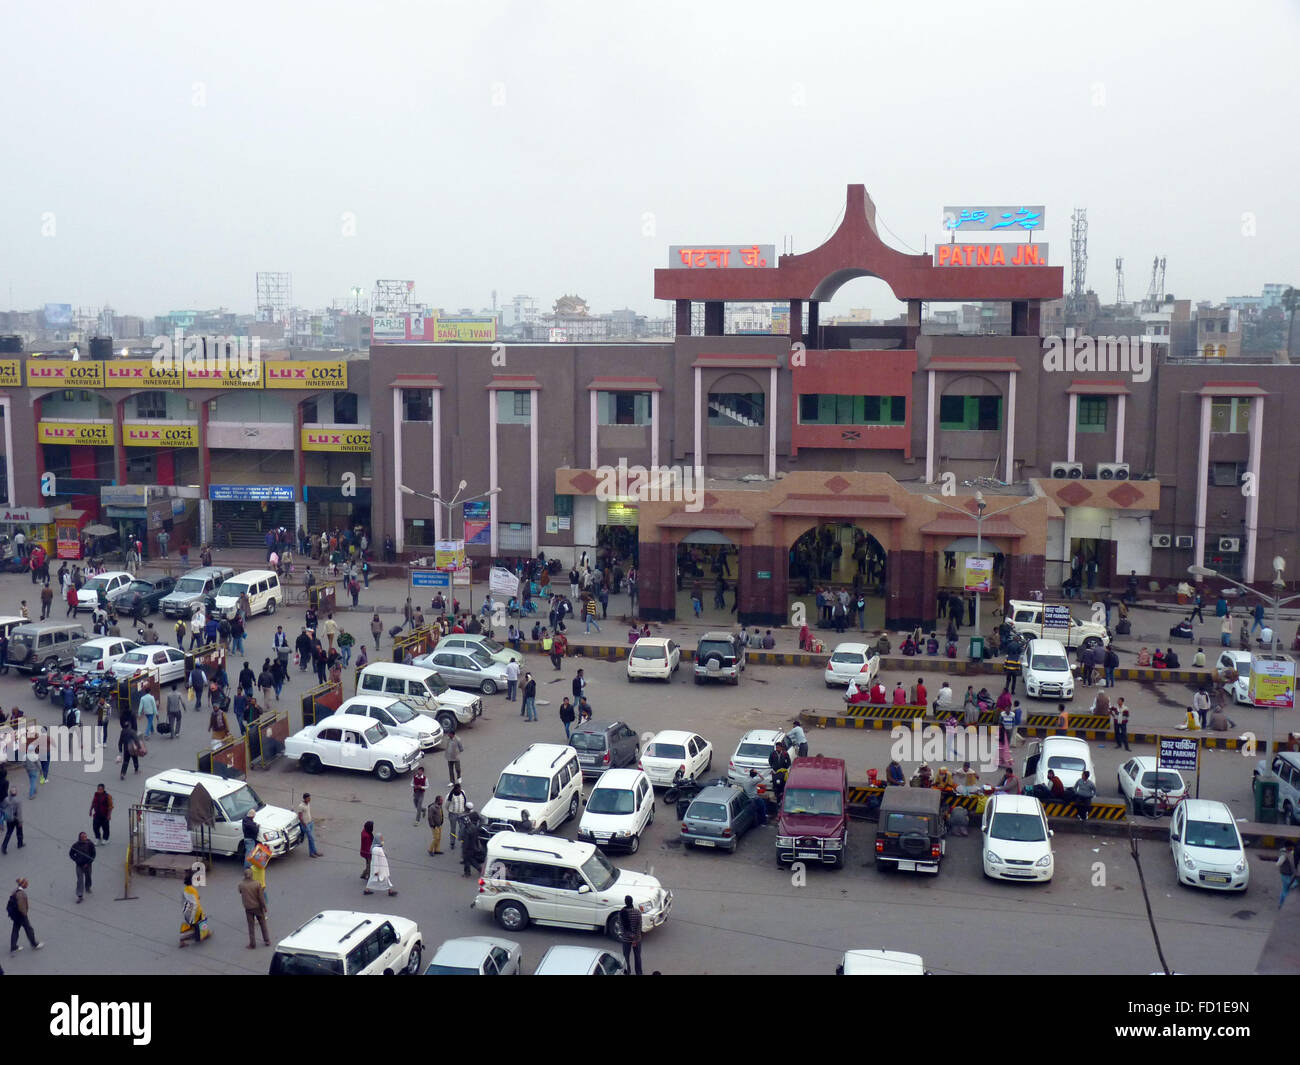 typical view outside patna railway station in bihar india stock photo 94075569 alamy. Black Bedroom Furniture Sets. Home Design Ideas